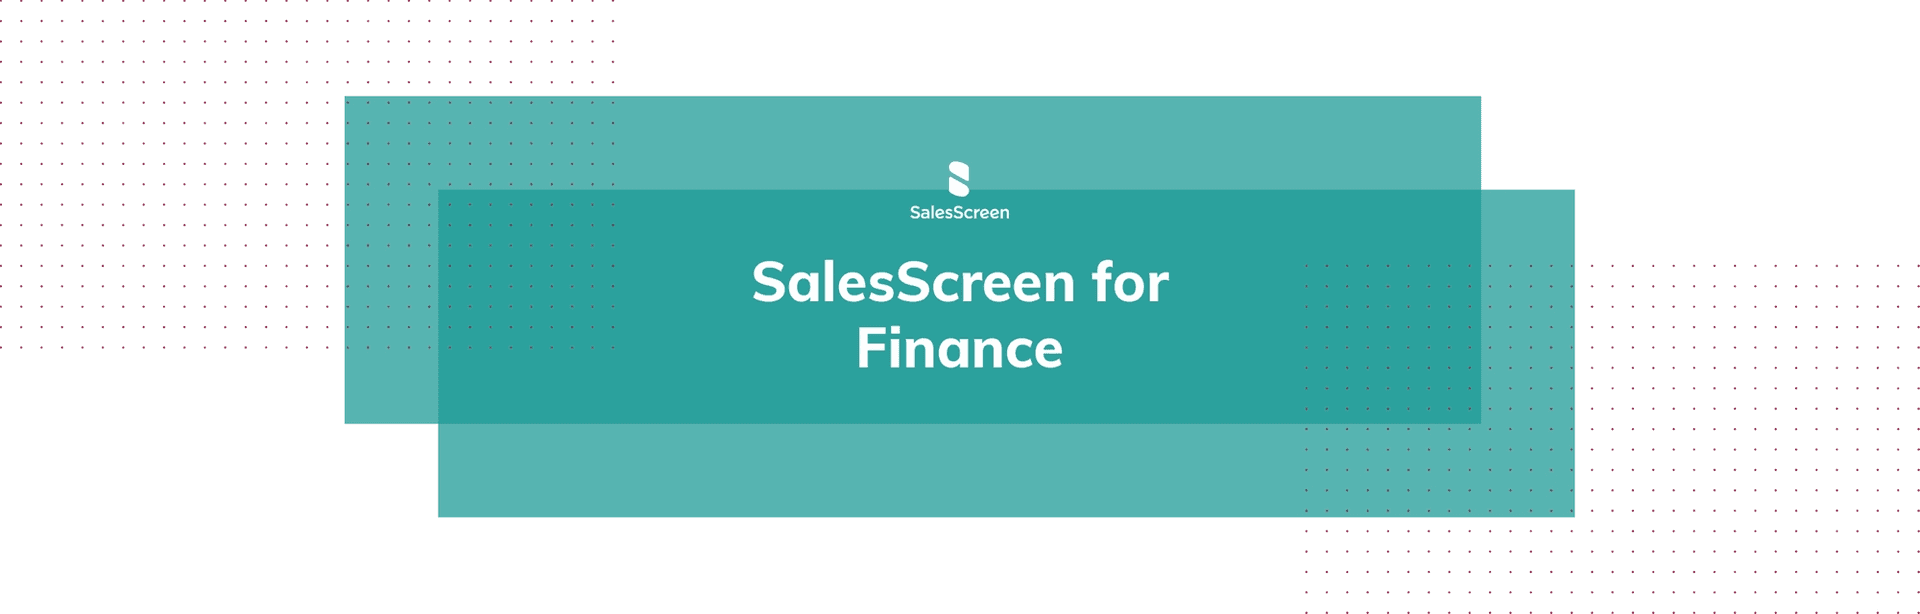 SalesScreen for Finance